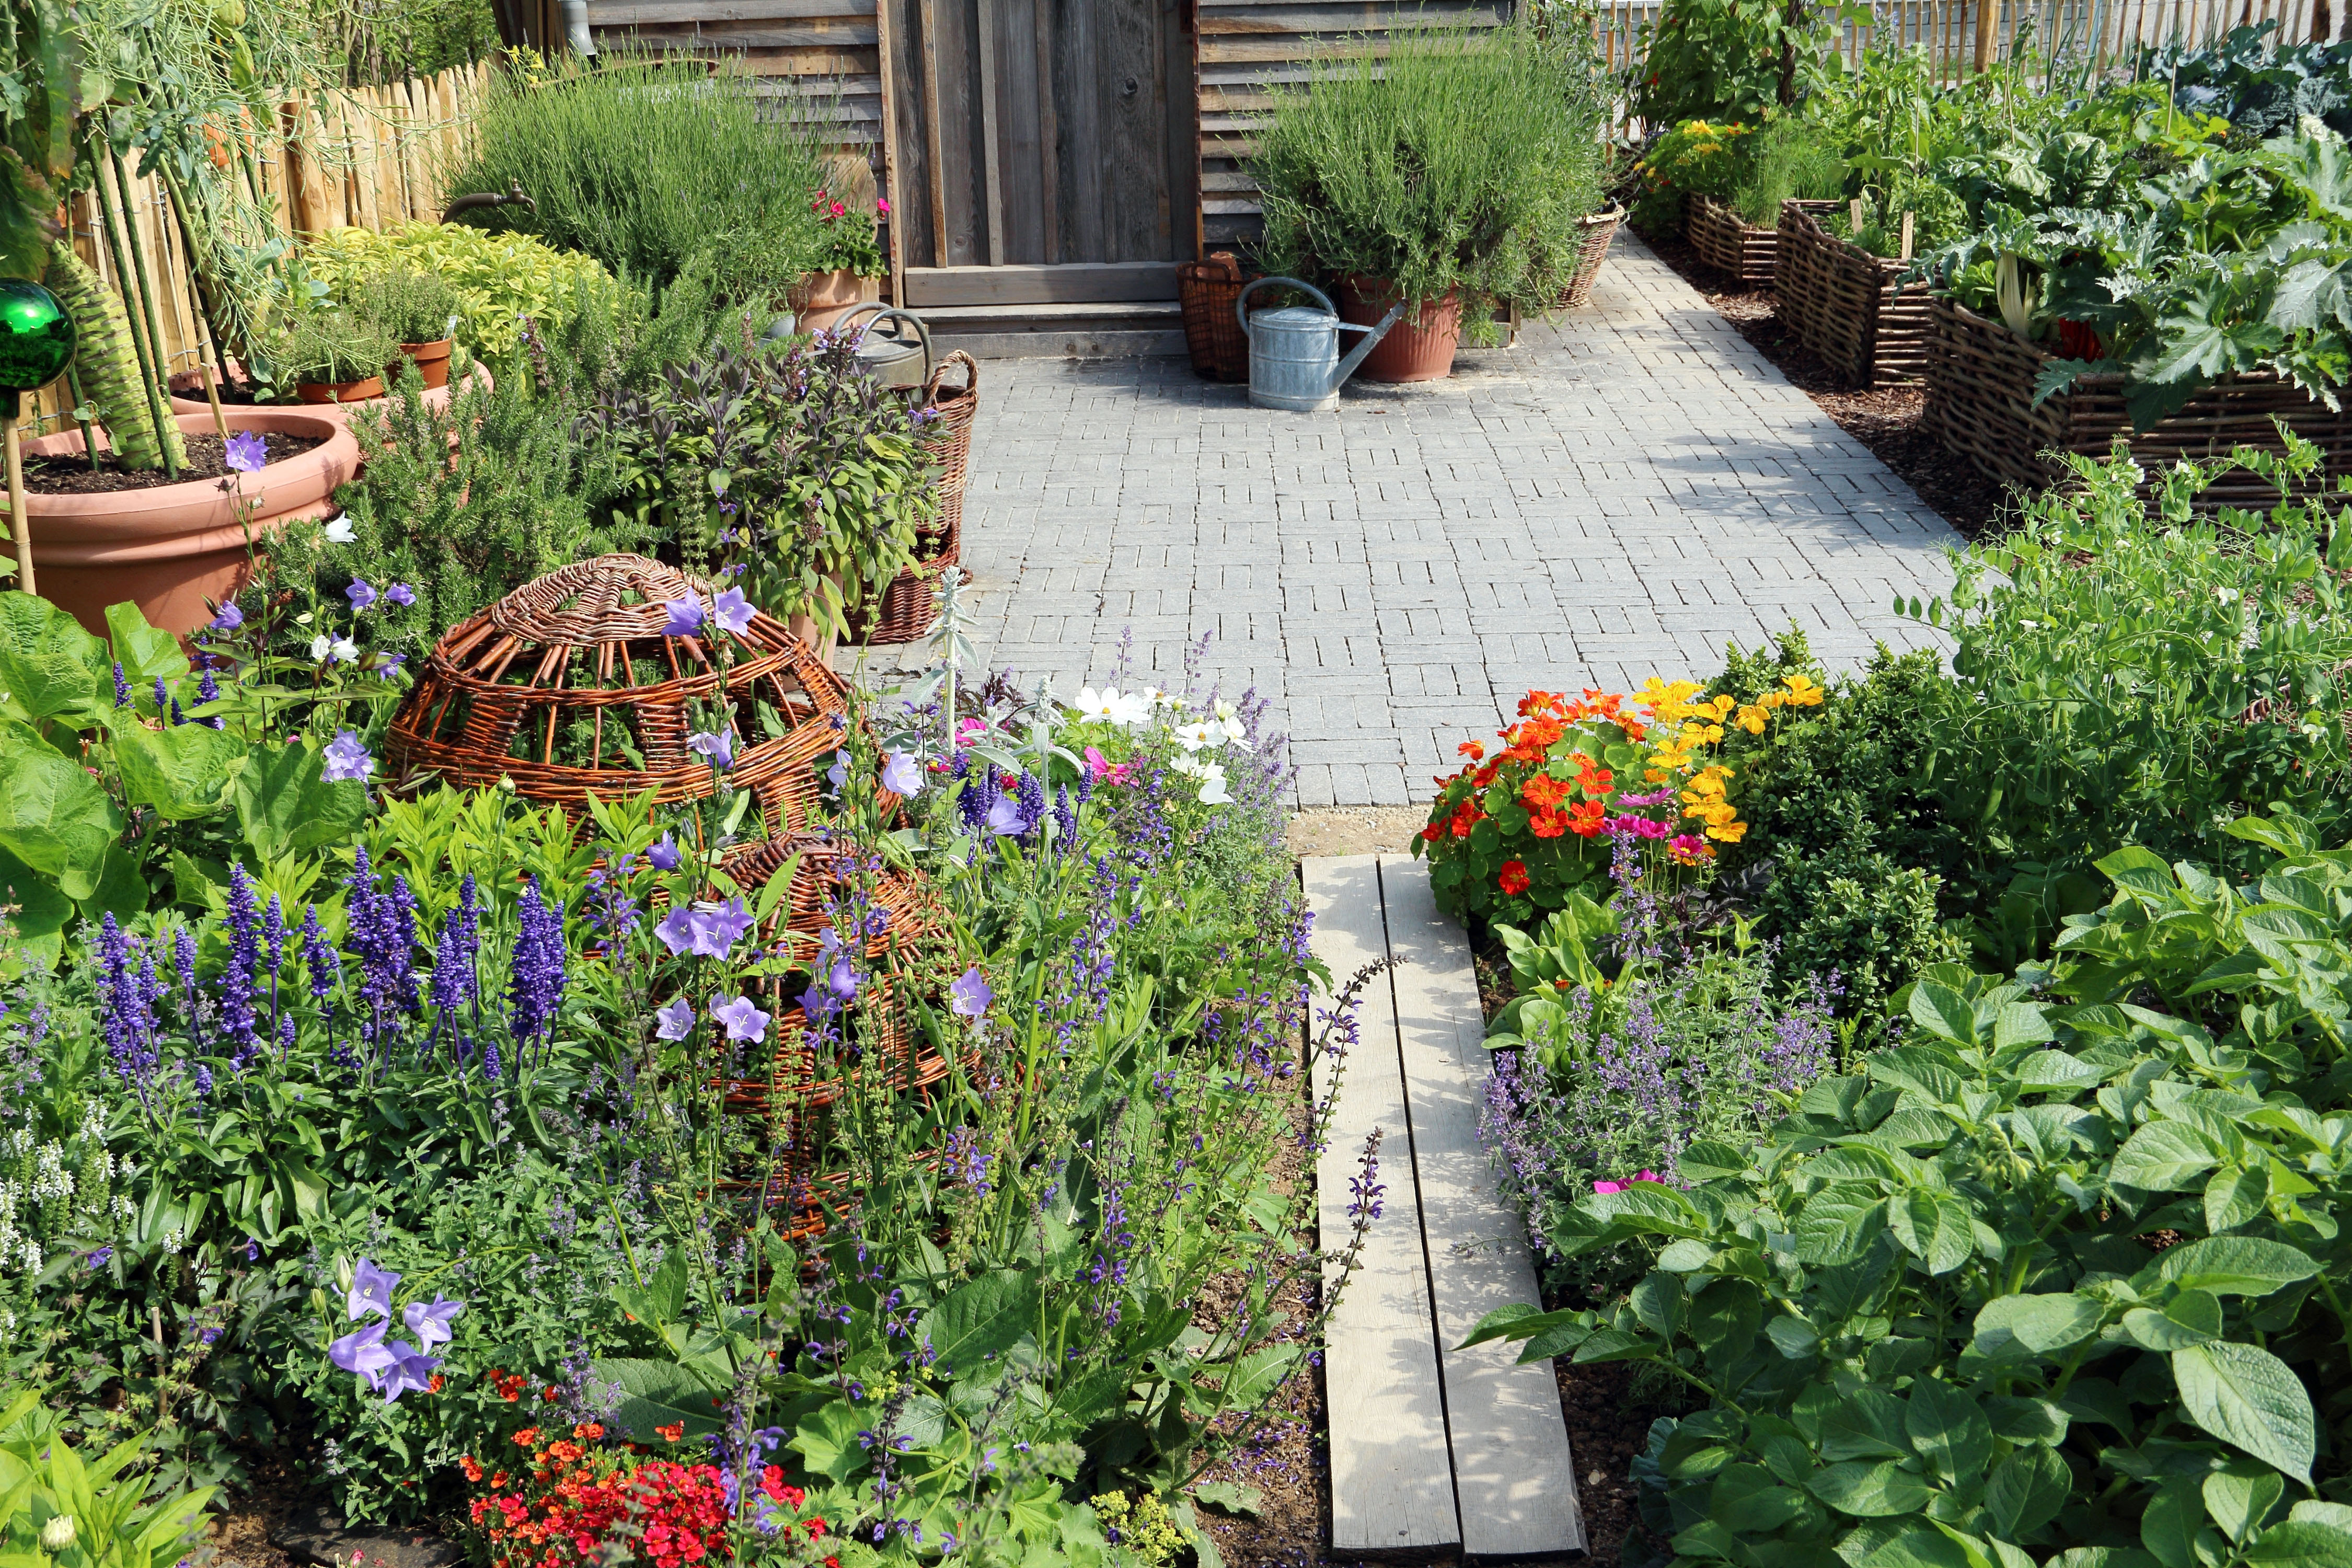 Edible Landscaping Plants Pictures | The Old Farmer's Almanac